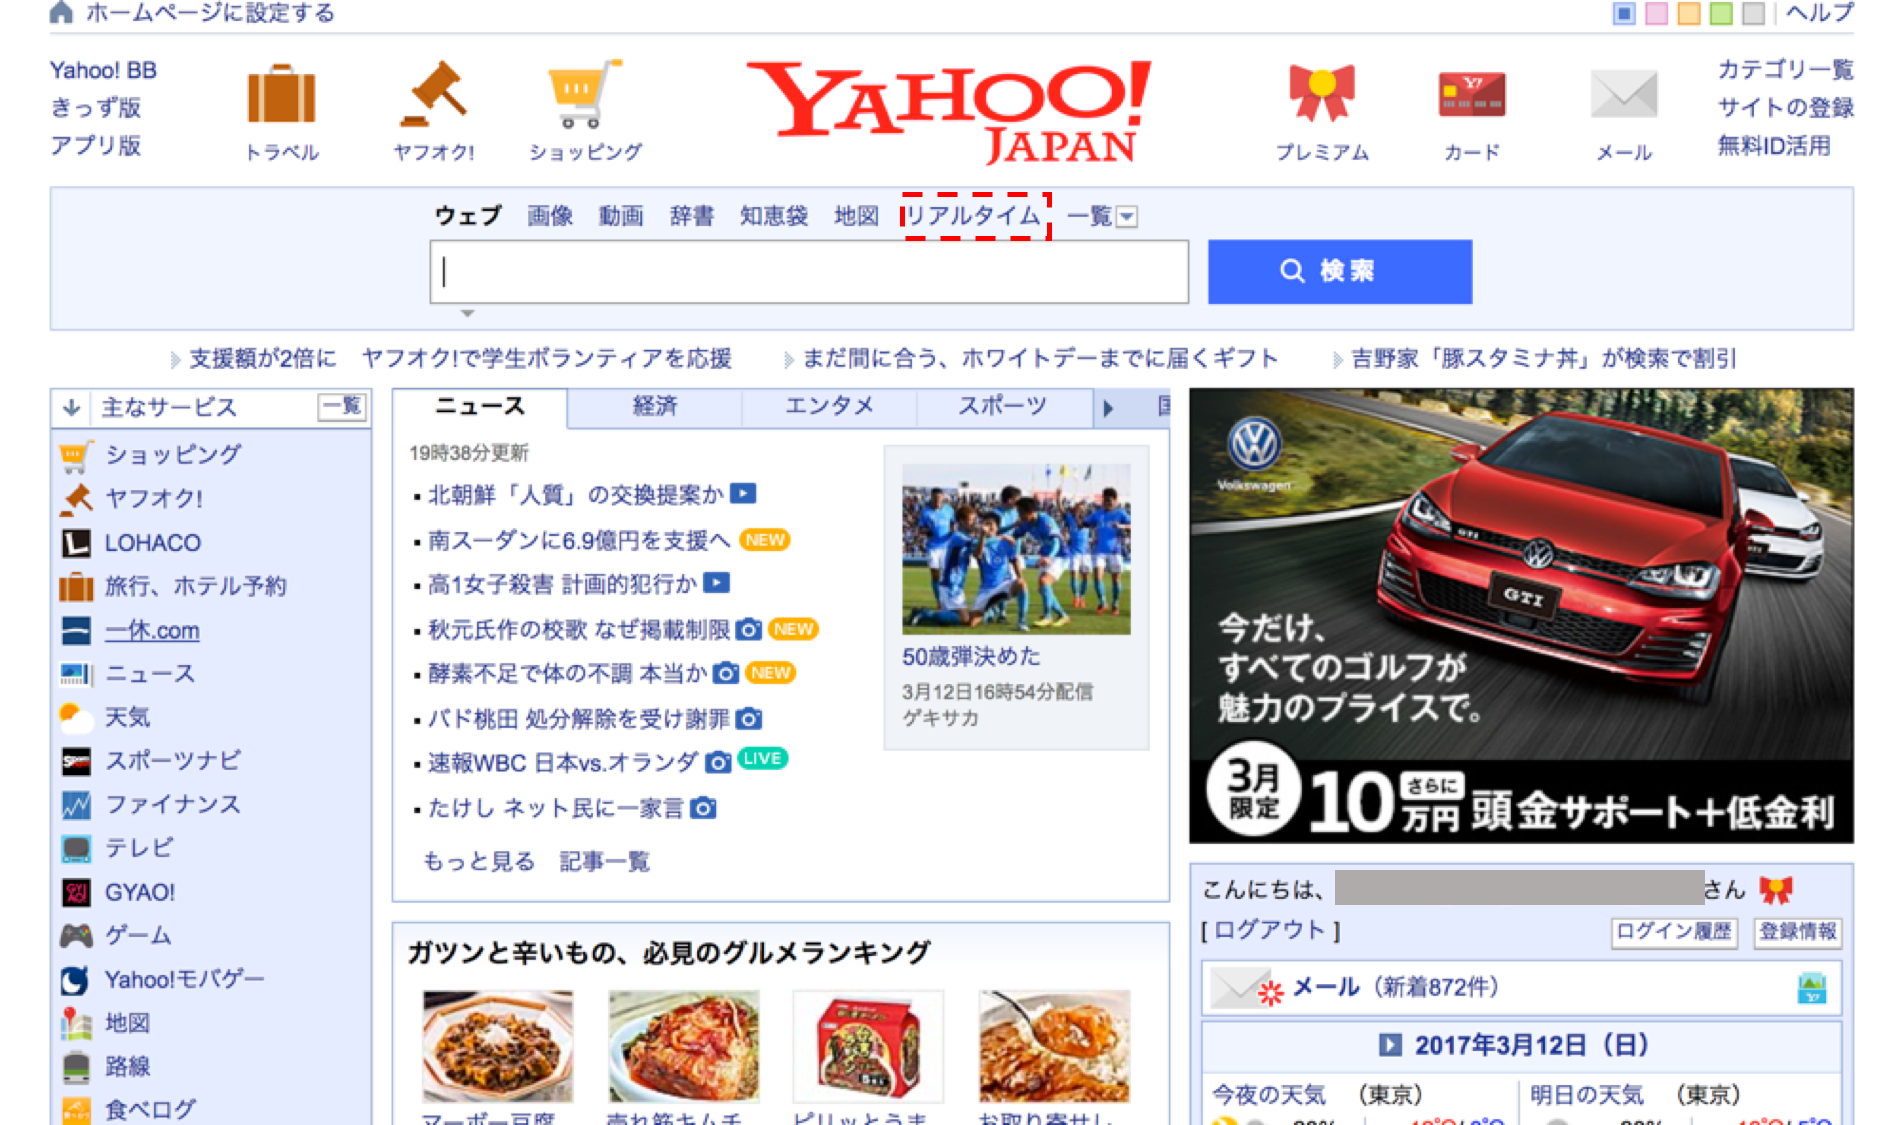 yahoo!realtime.png